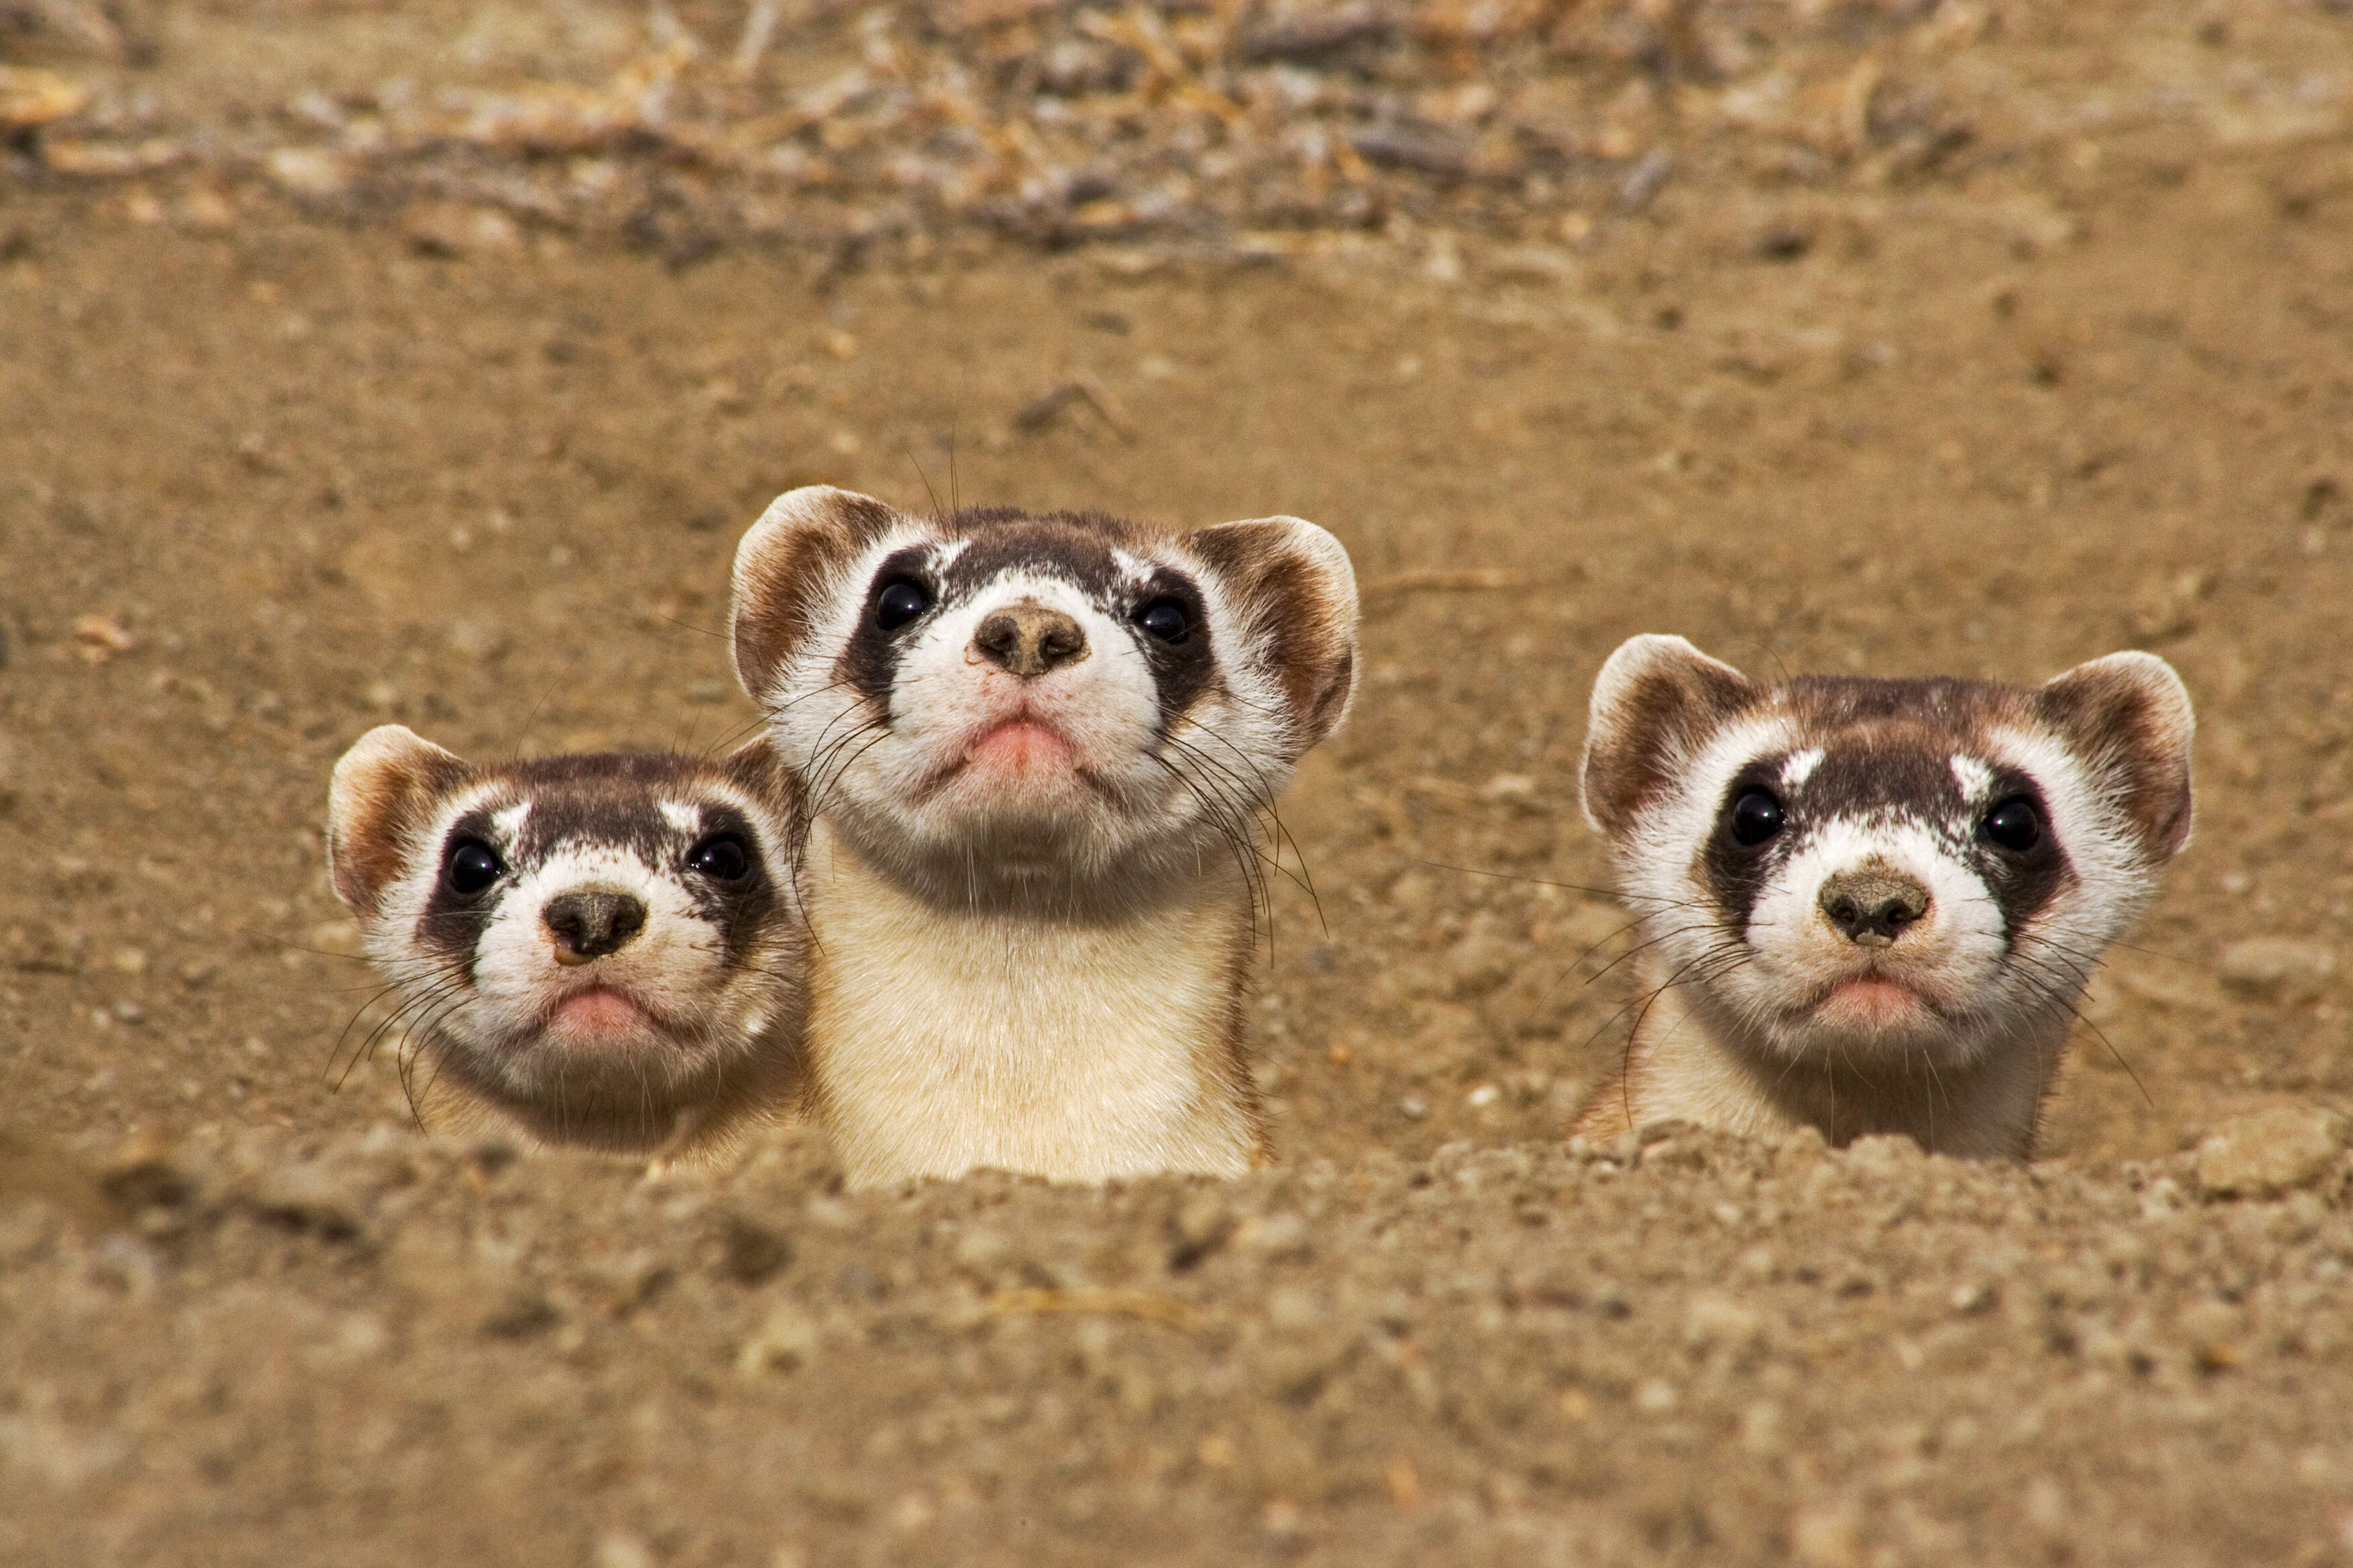 Once thought to be extinct, a remnant population of the endangered black-footed ferret was discovered,...